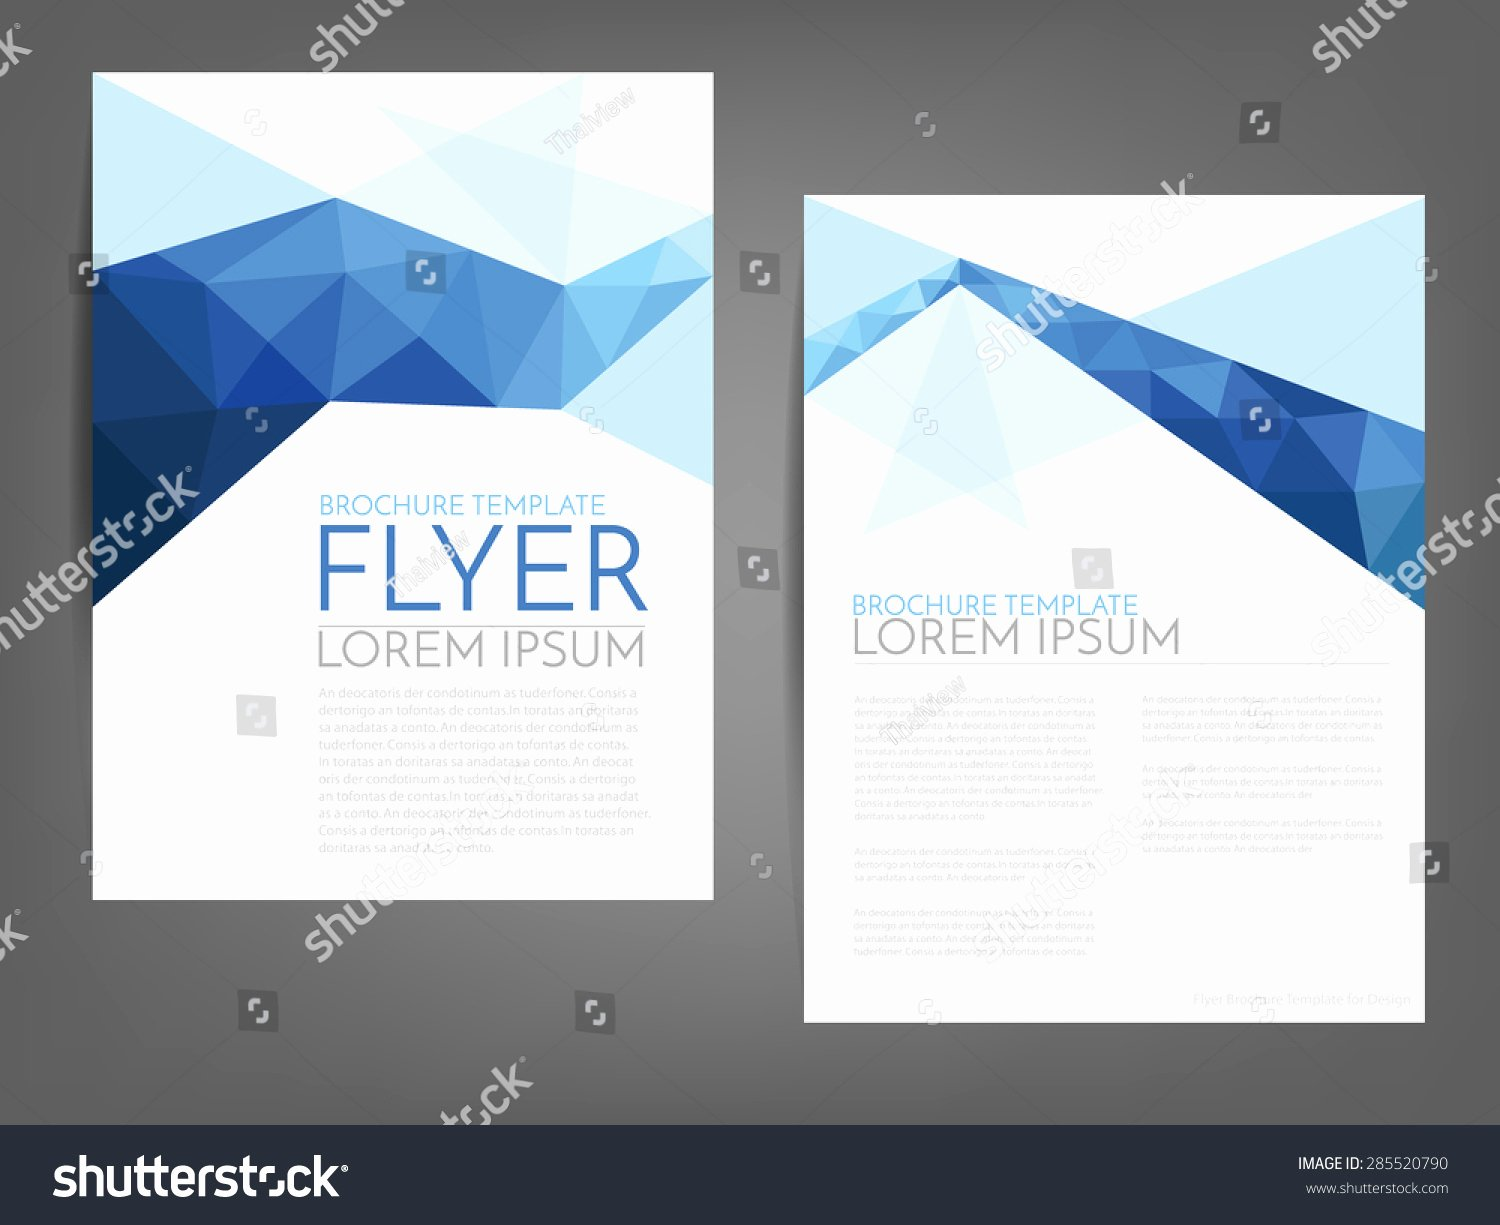 White Paper Design Template Luxury Blue Polygonal Line Brochure Template Flyer 스톡 벡터